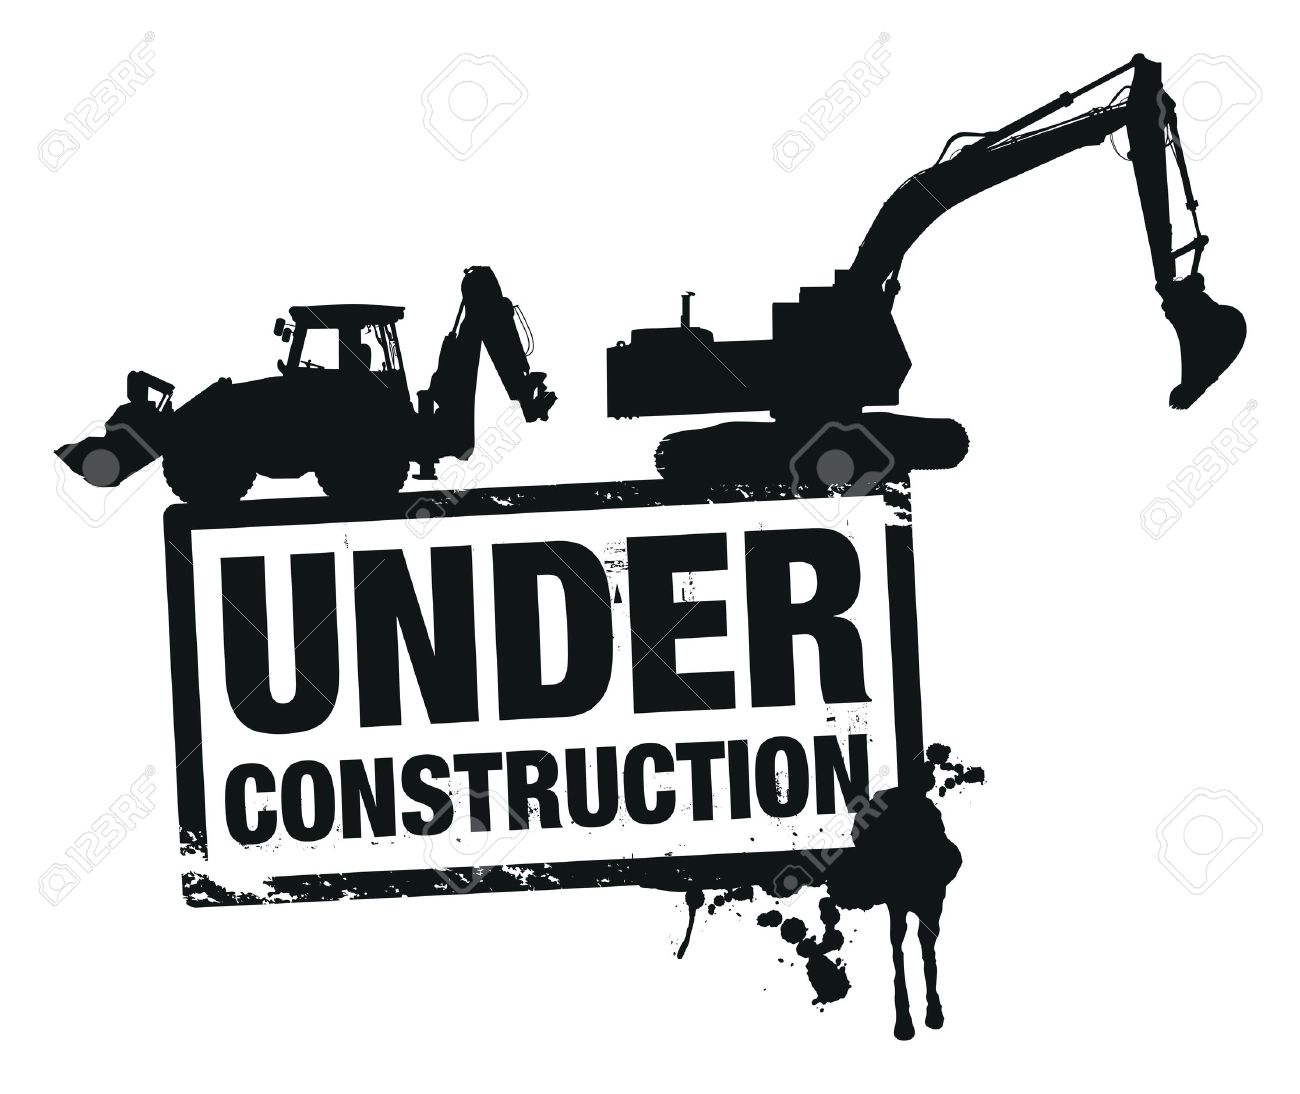 Construction cliparts clipart freeuse download Construction clipart - ClipartFest clipart freeuse download